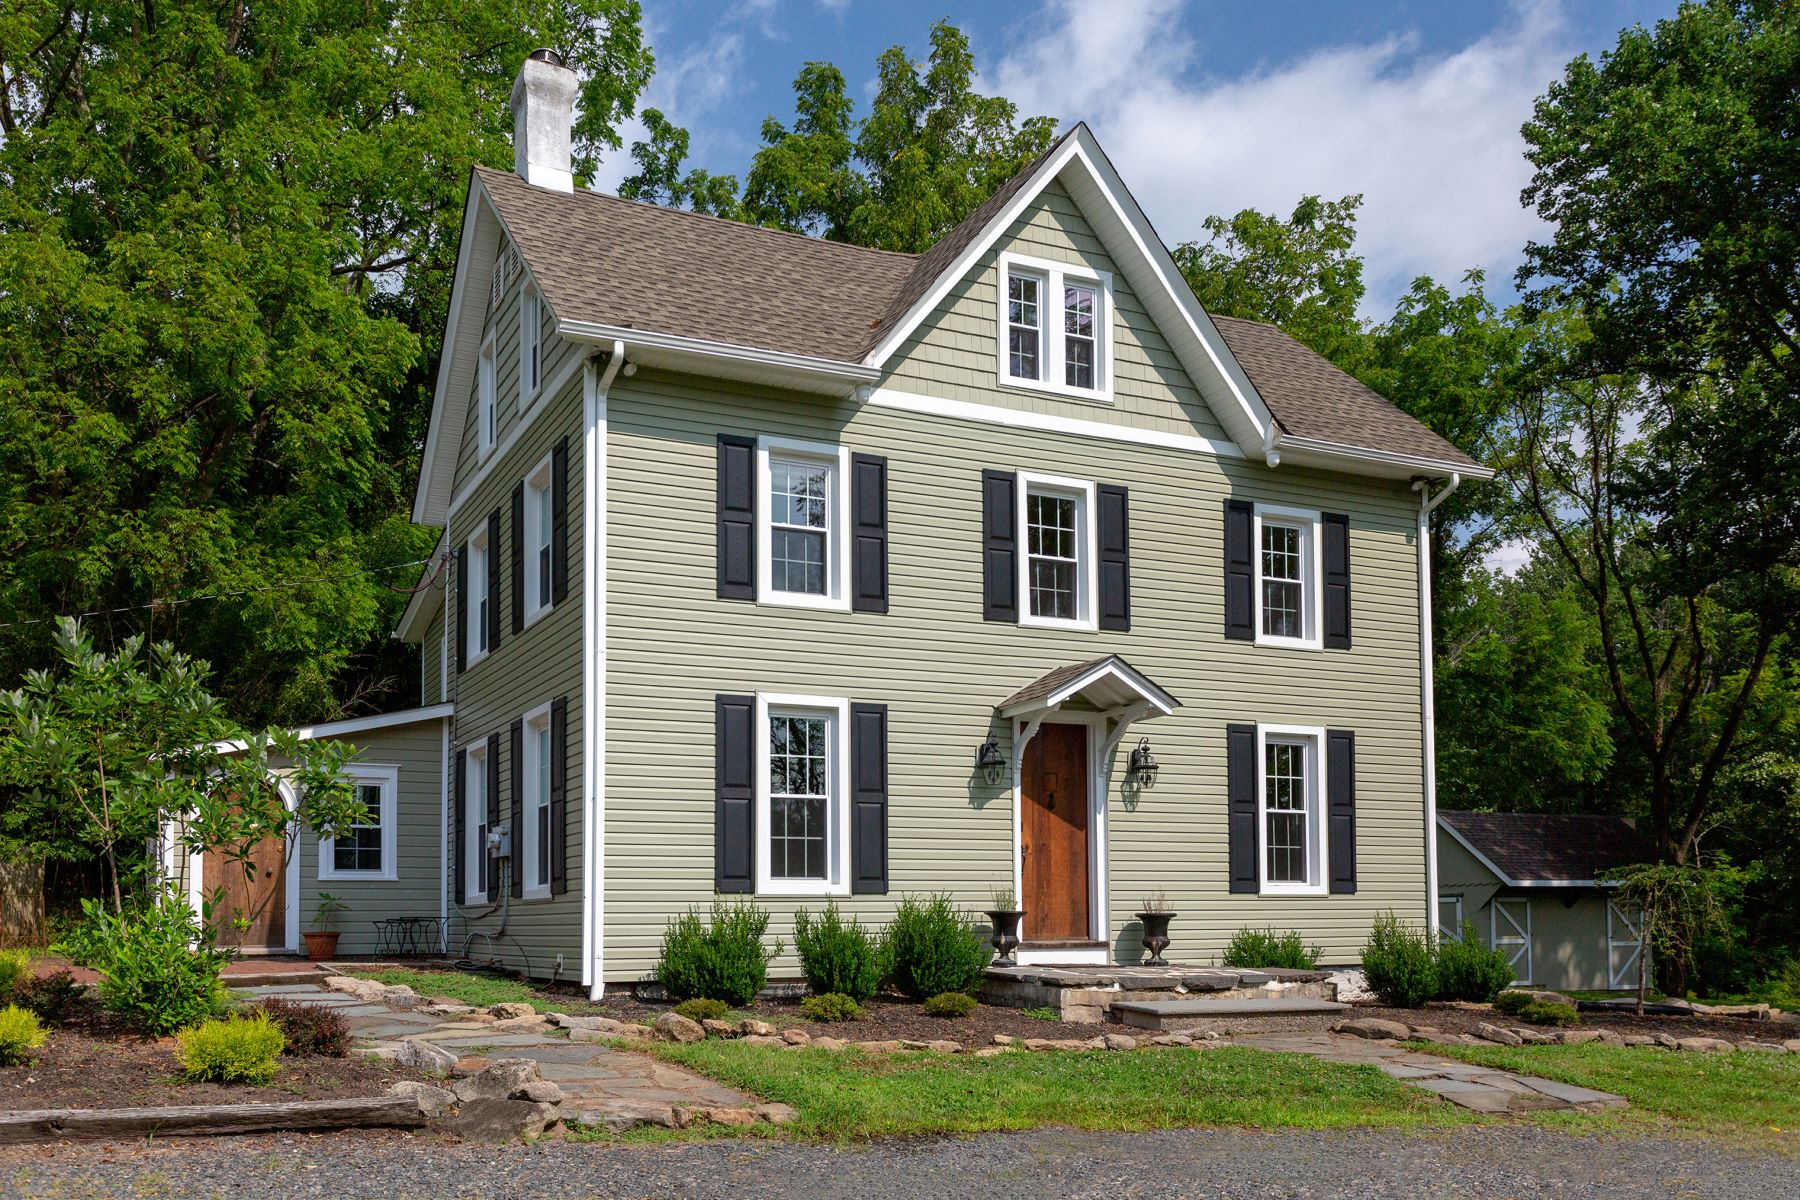 Single Family Homes for Sale at 5342 ASH RD Doylestown, Pennsylvania 18902 United States